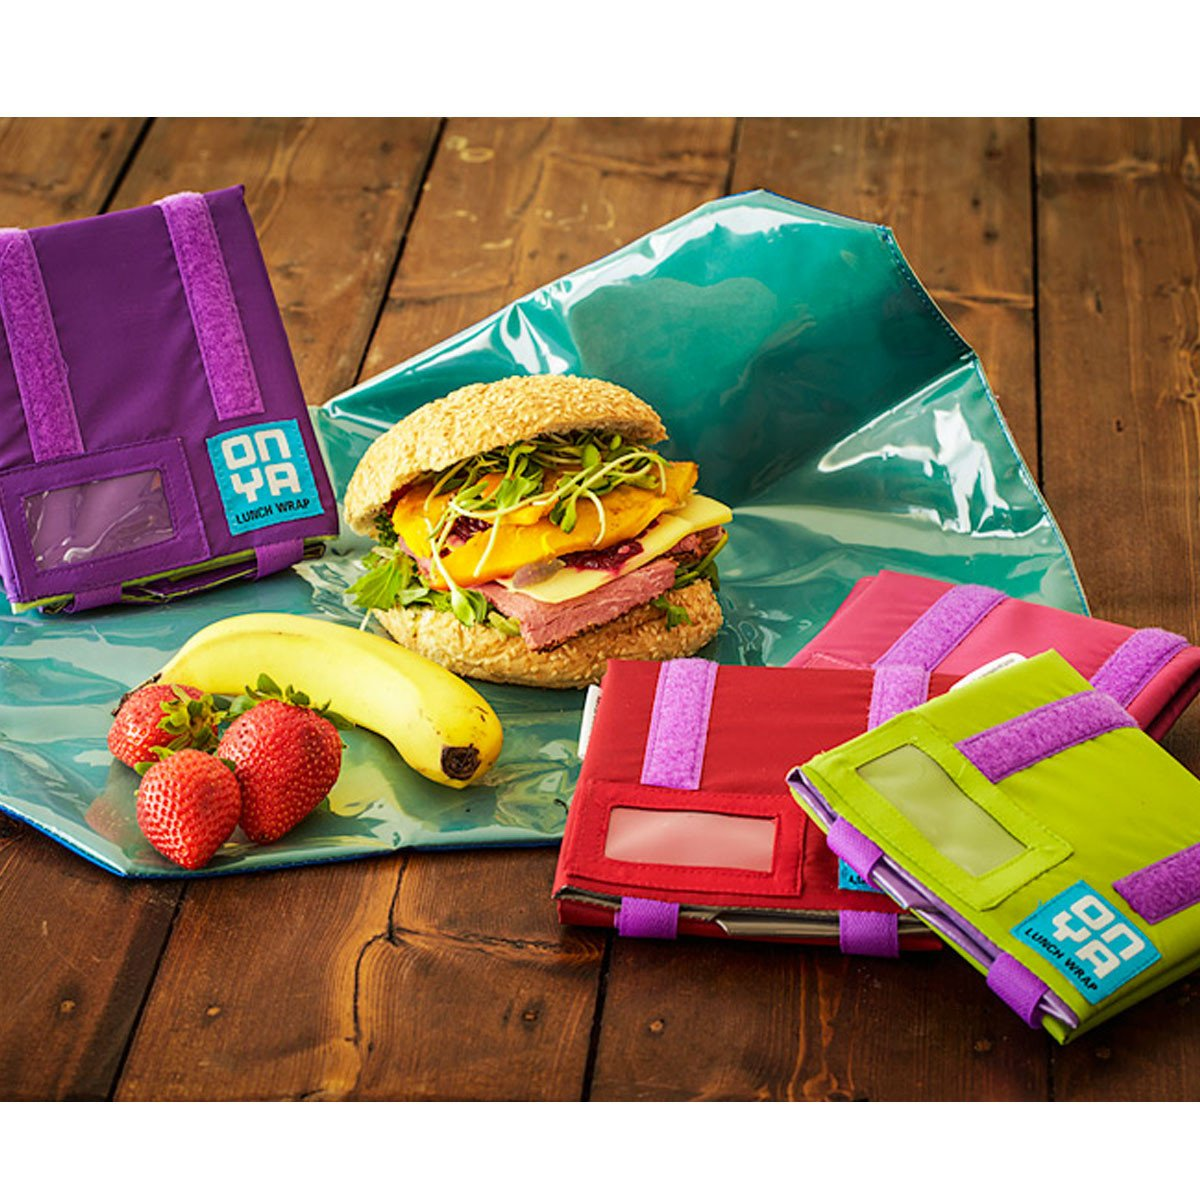 Onya Reusable Sandwich Wrap Onya Lunch Boxes and Bags at Little Earth Nest Eco Shop